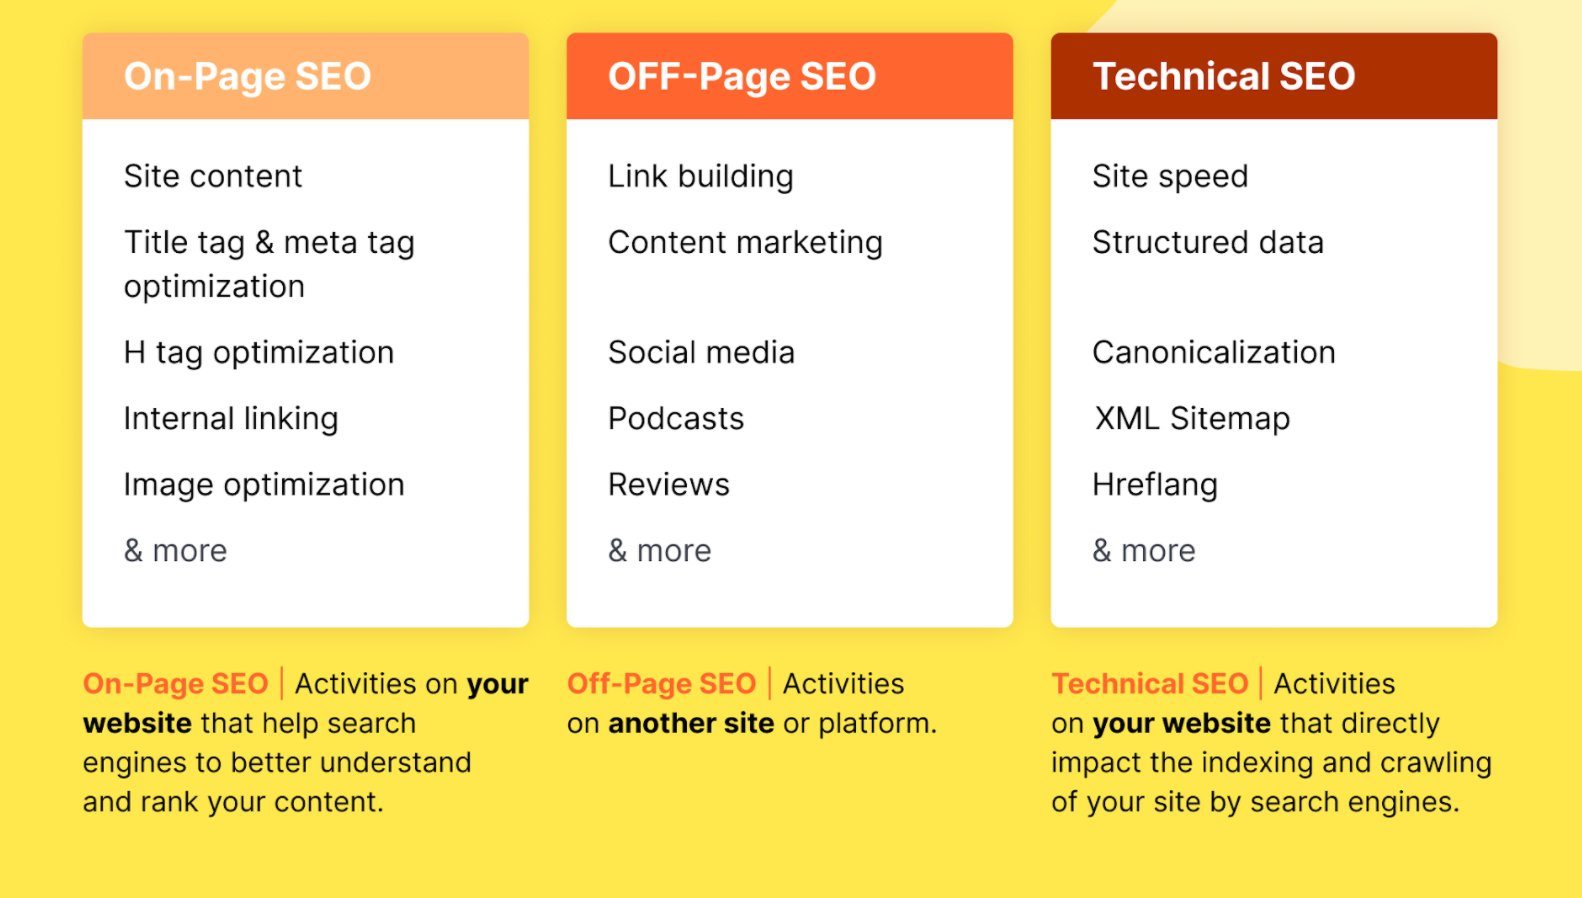 on-page seo off page seo technical seo